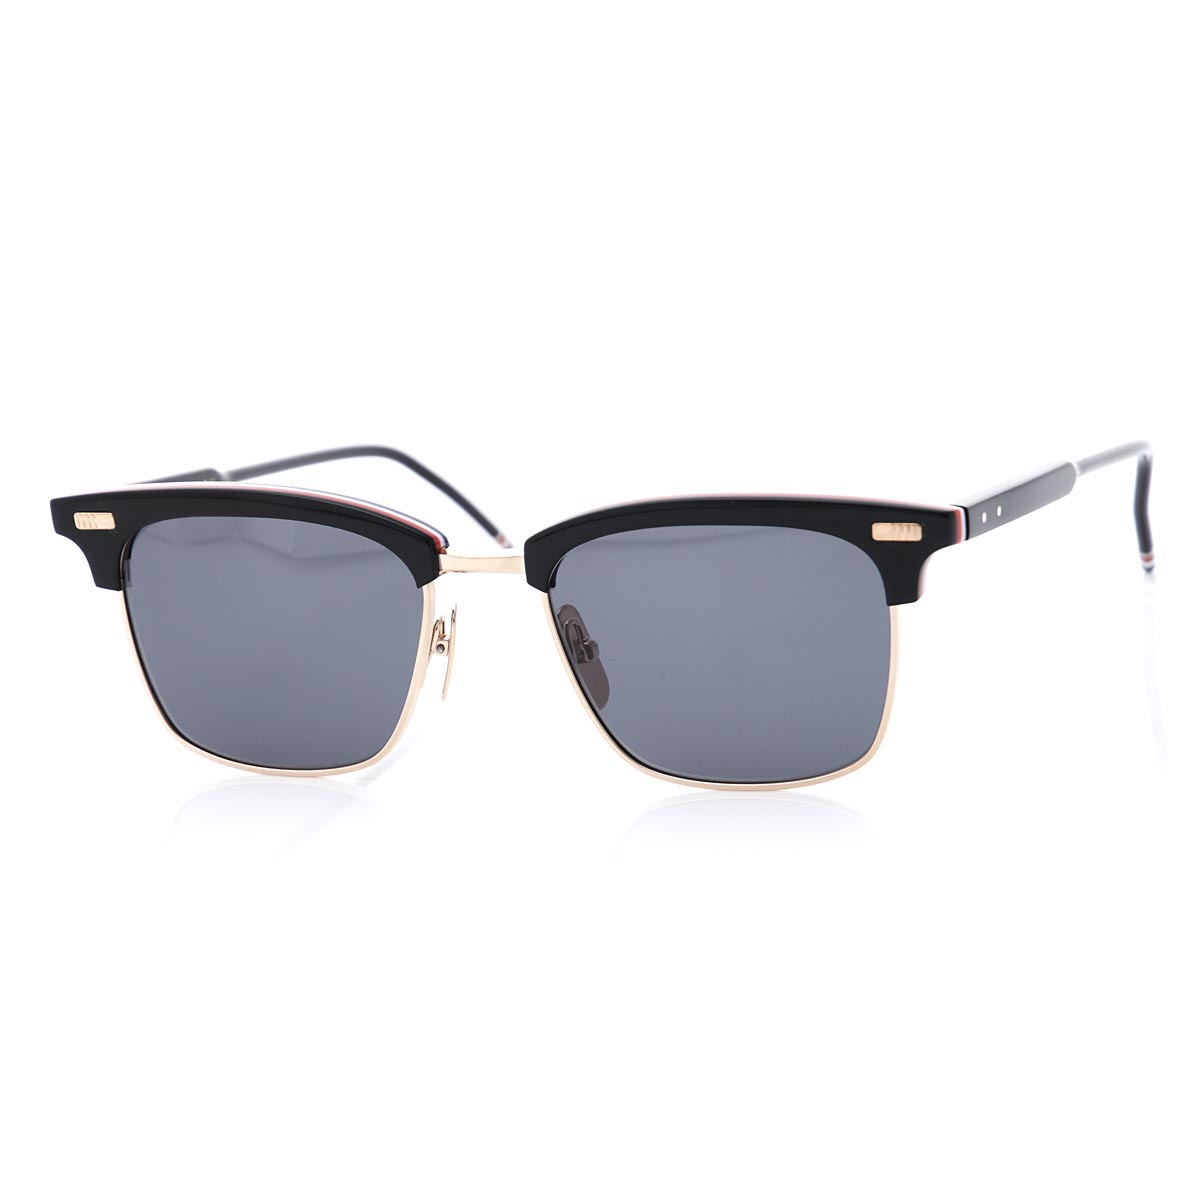 731b19d2fb64 Tom Browne THOM BROWNE. Sunglasses black men gift present tb 711 a t blk gld  52 Wellington